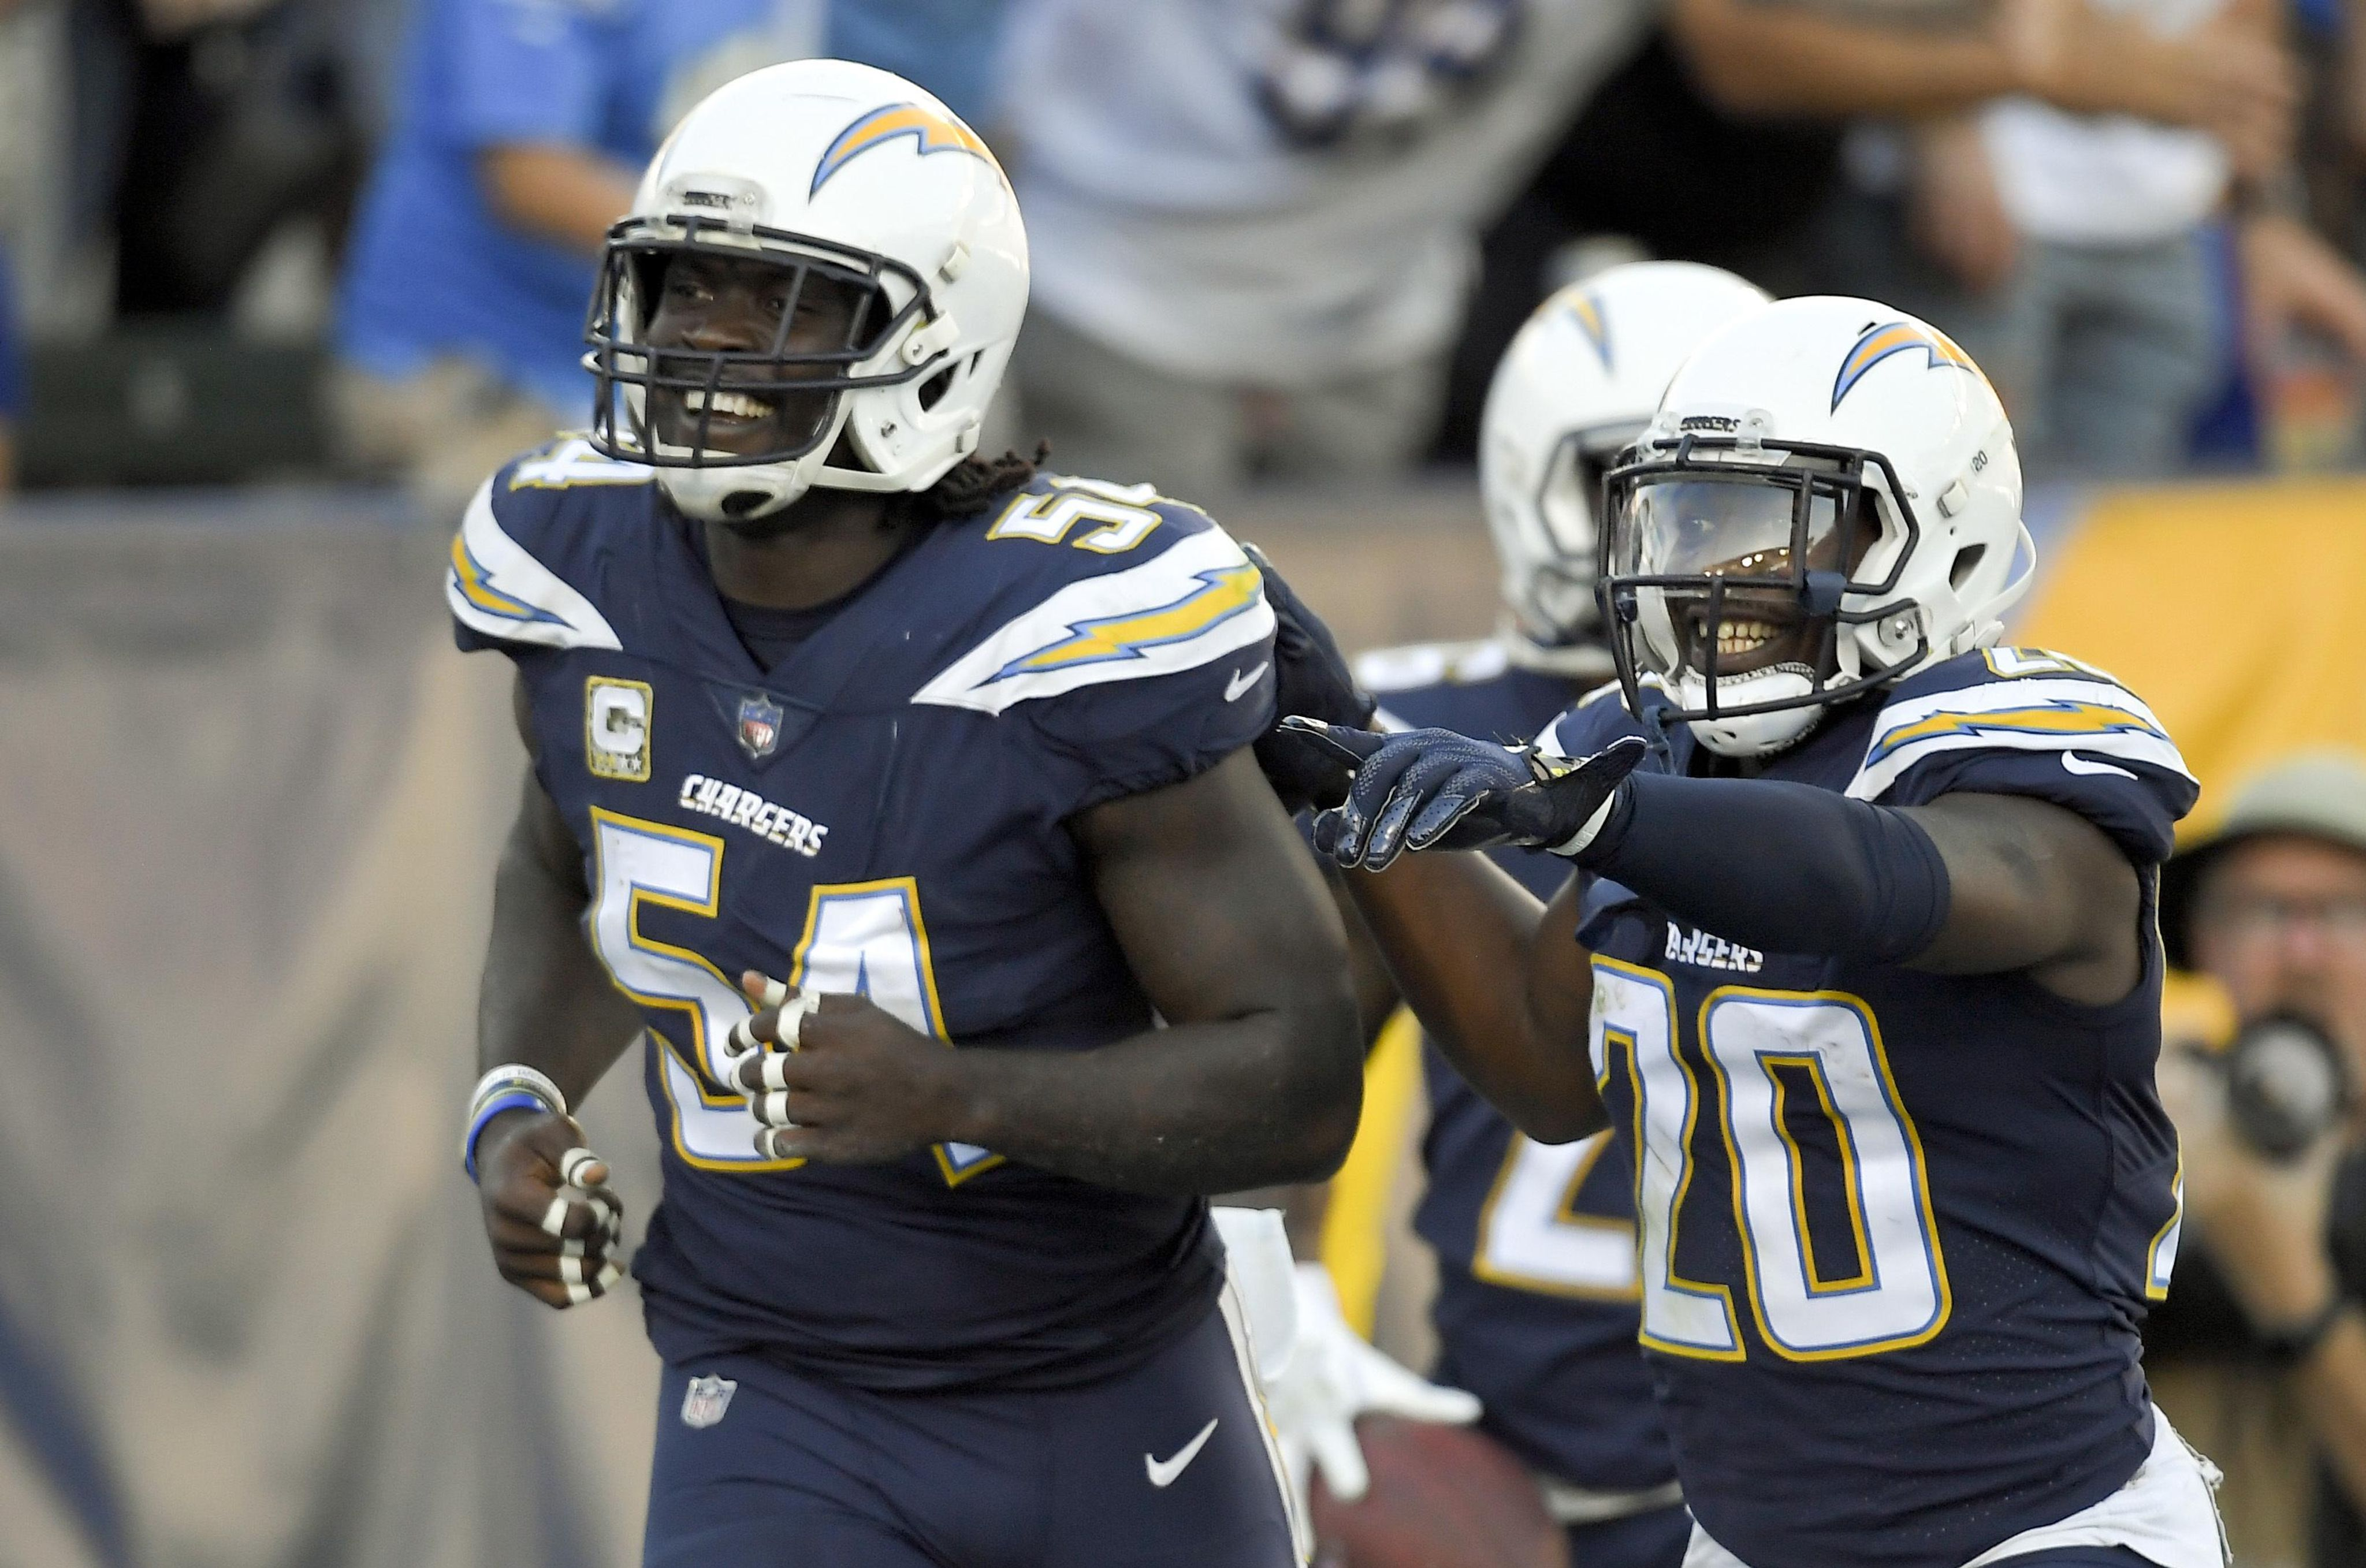 Bills_chargers_fooball_65224_s4096x2715